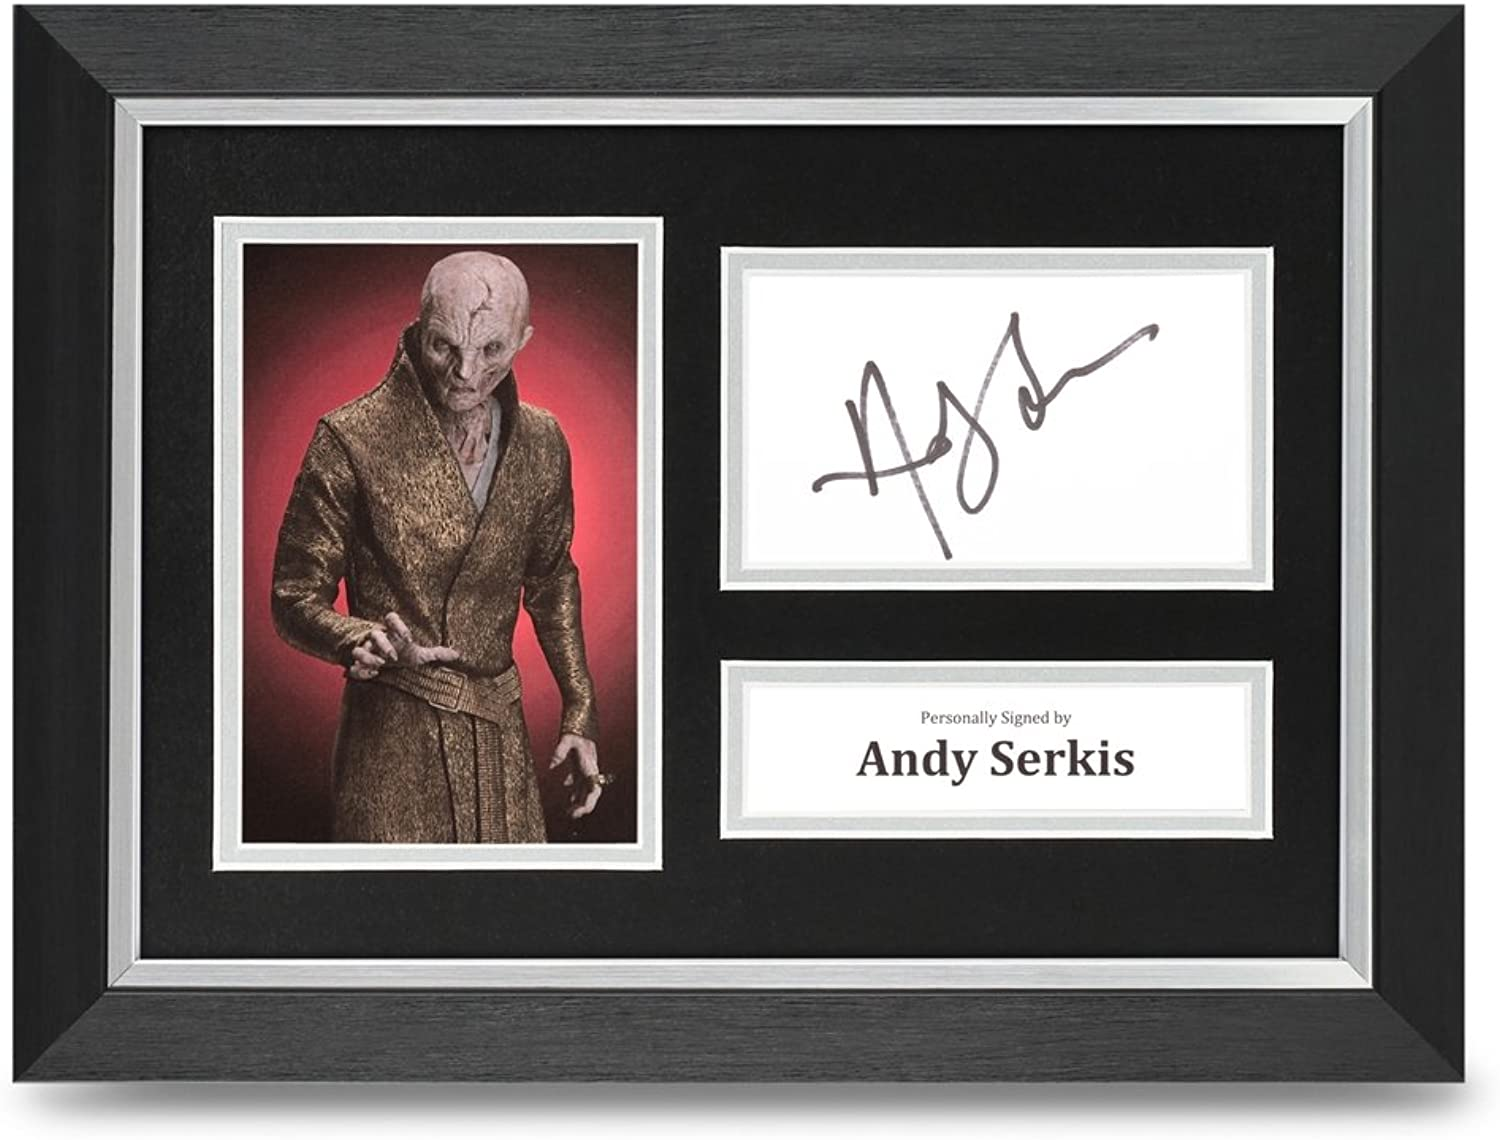 Andy Serkis Signed A4 Framed Photo Display Star Wars Autograph Memorabilia + COA